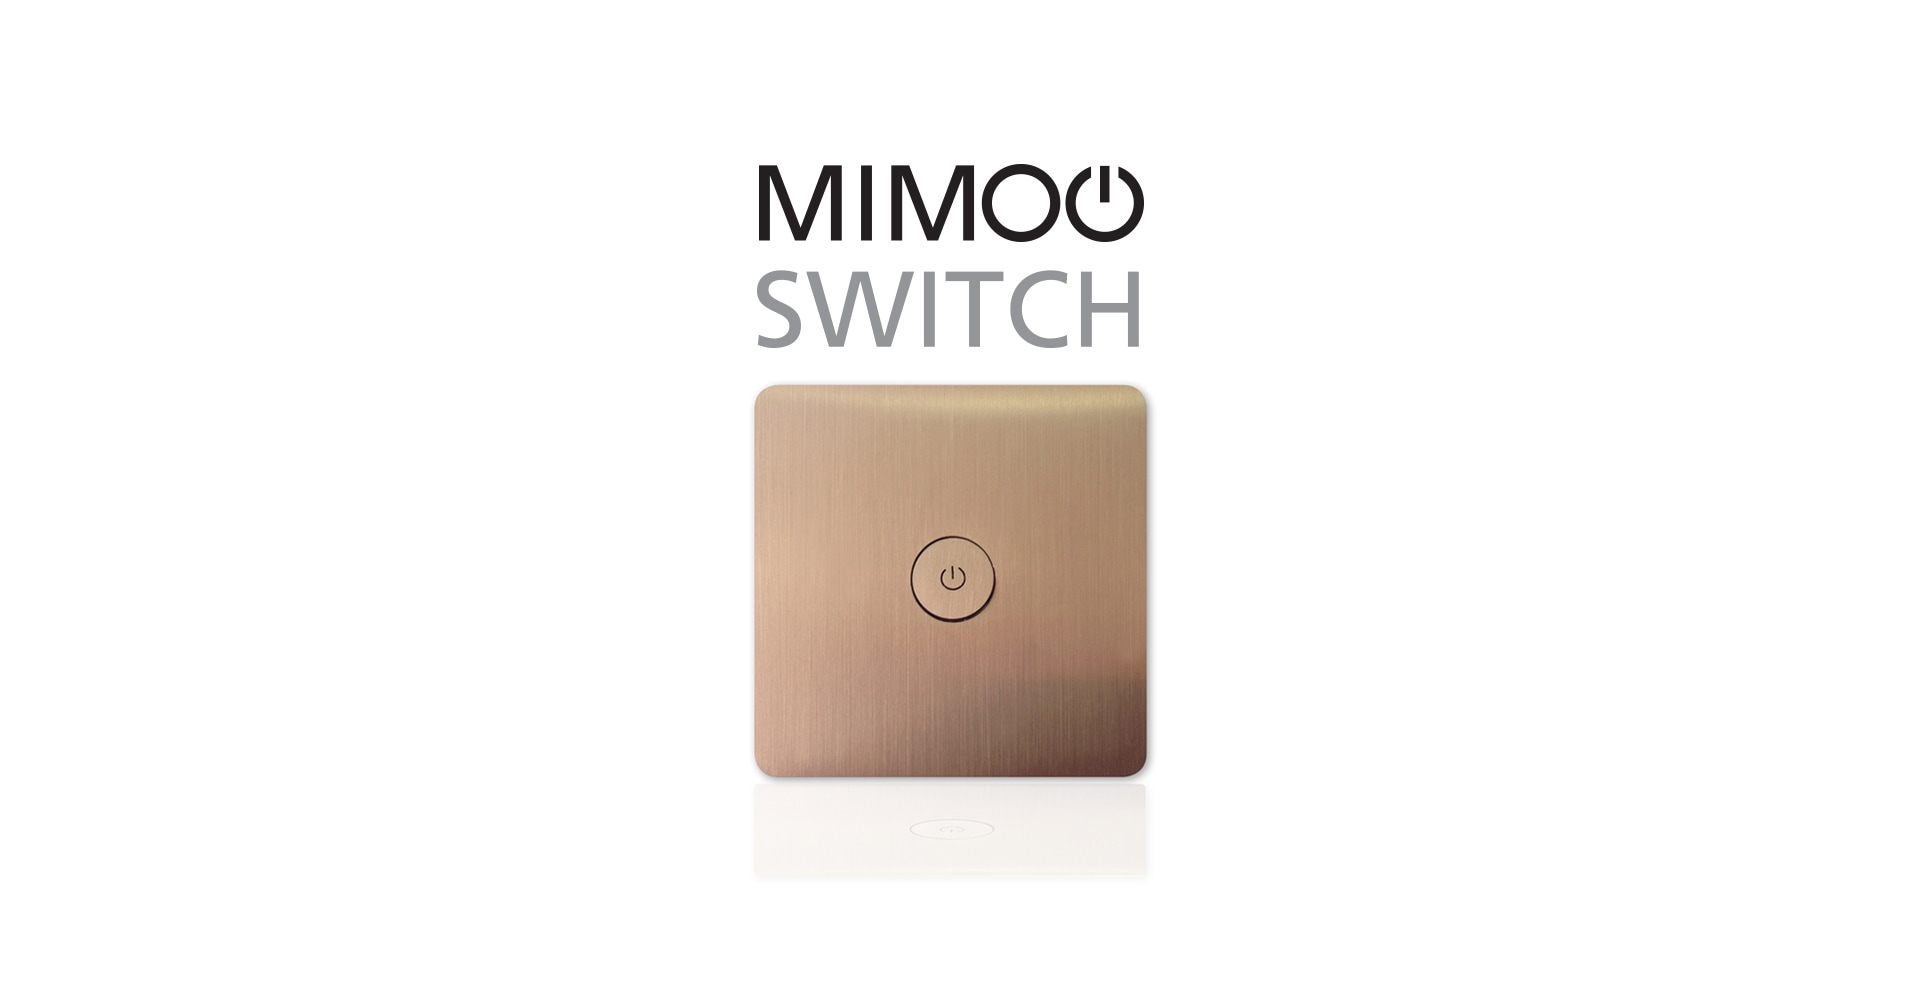 MIMOO SWITCH